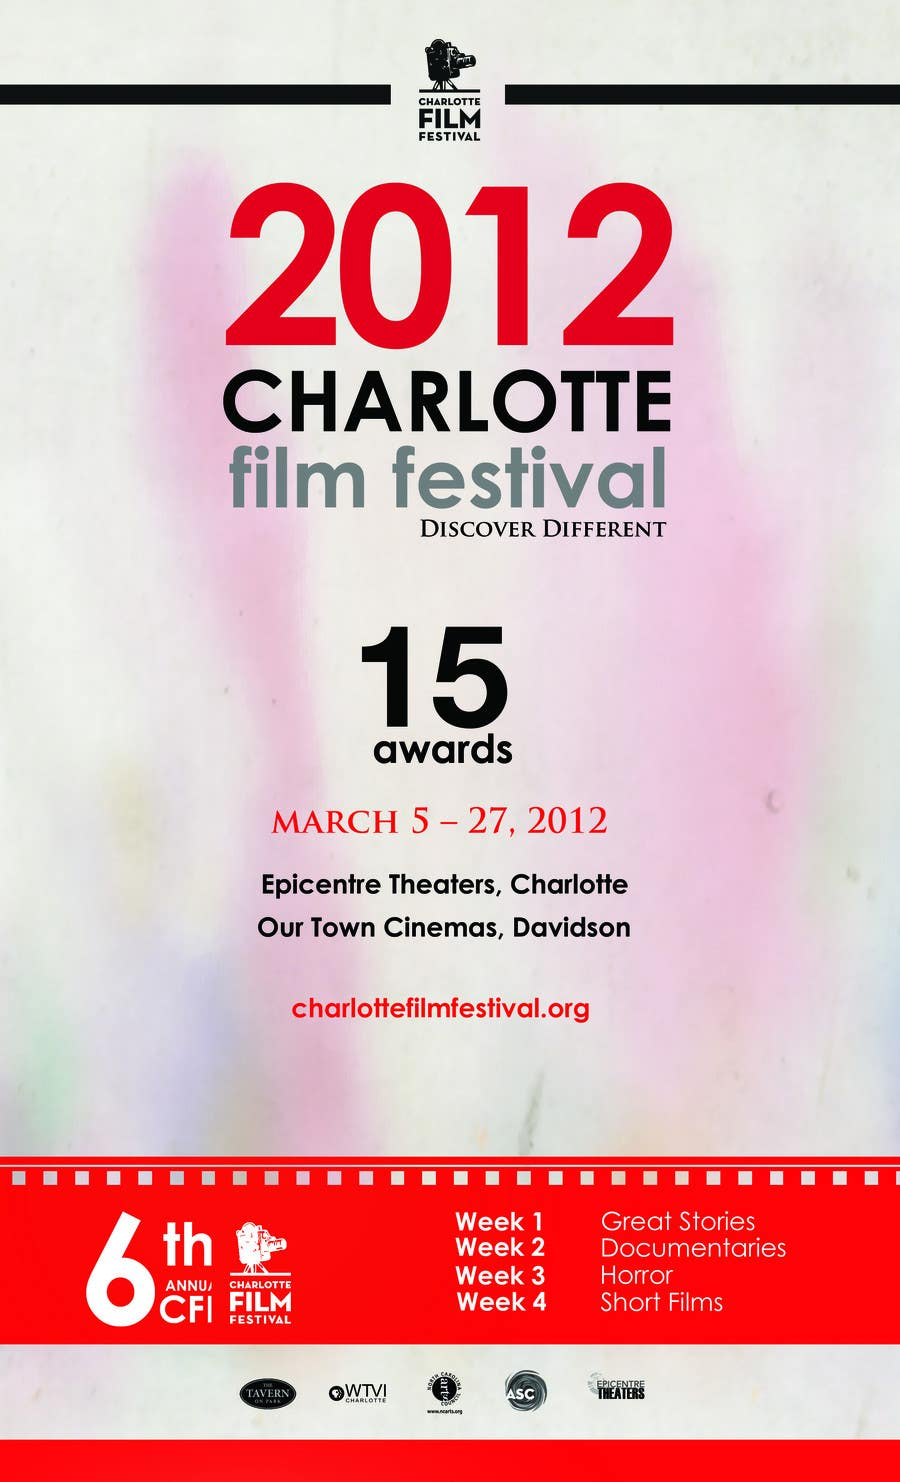 Proposition n°111 du concours Design materials for the Charlotte International Film Festival